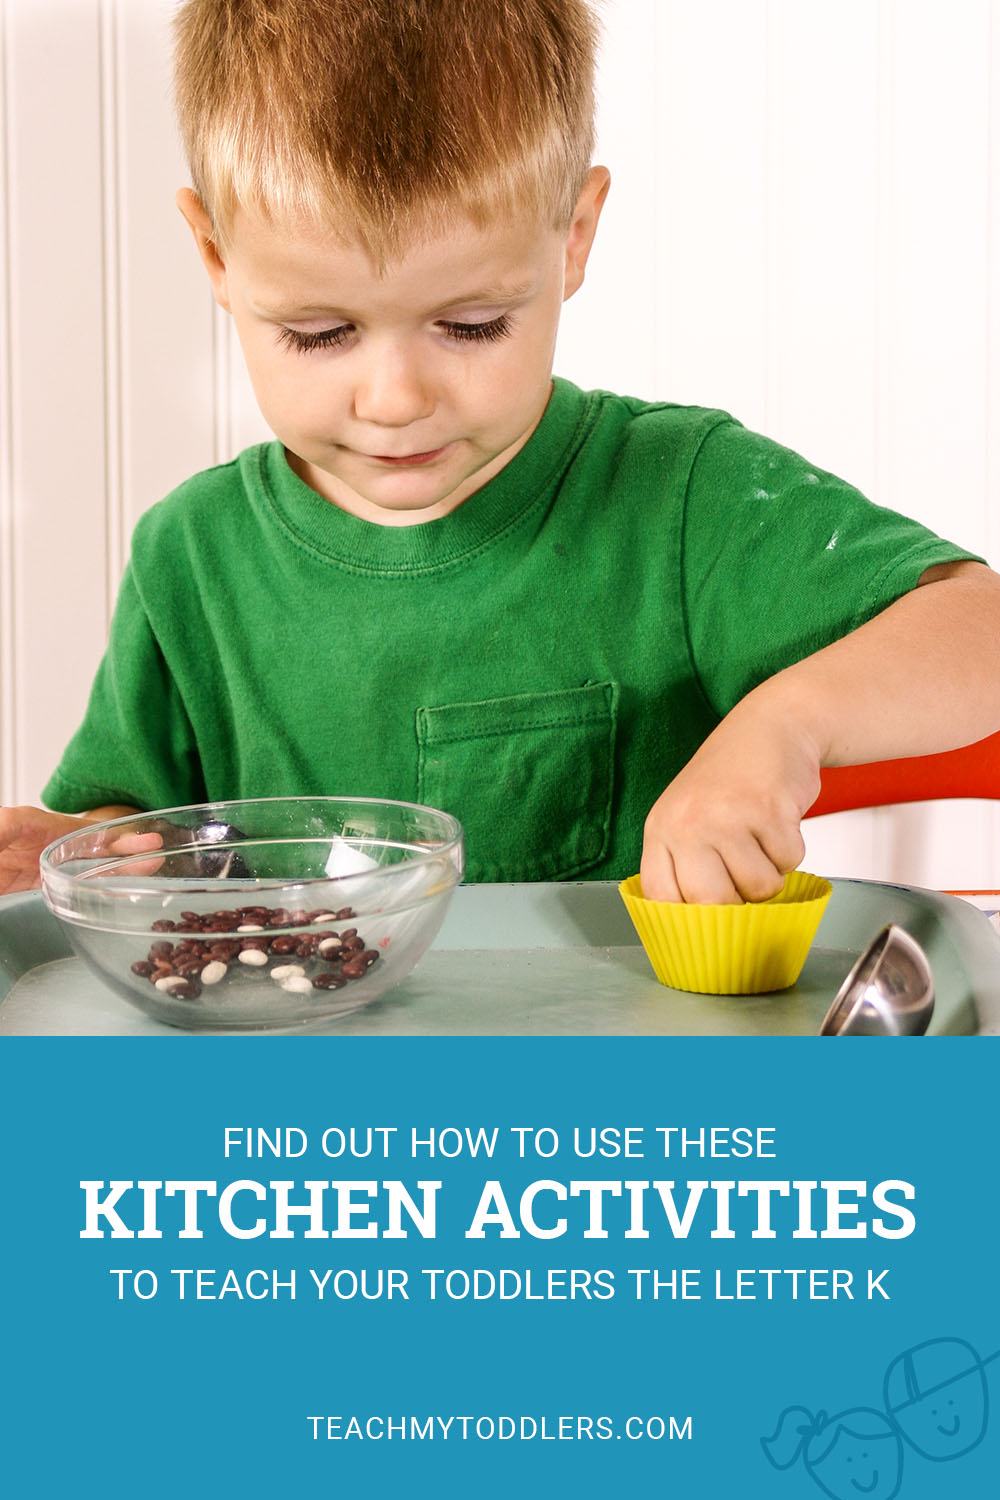 Find out how to use these kitchen activities to teach toddlers the letter k